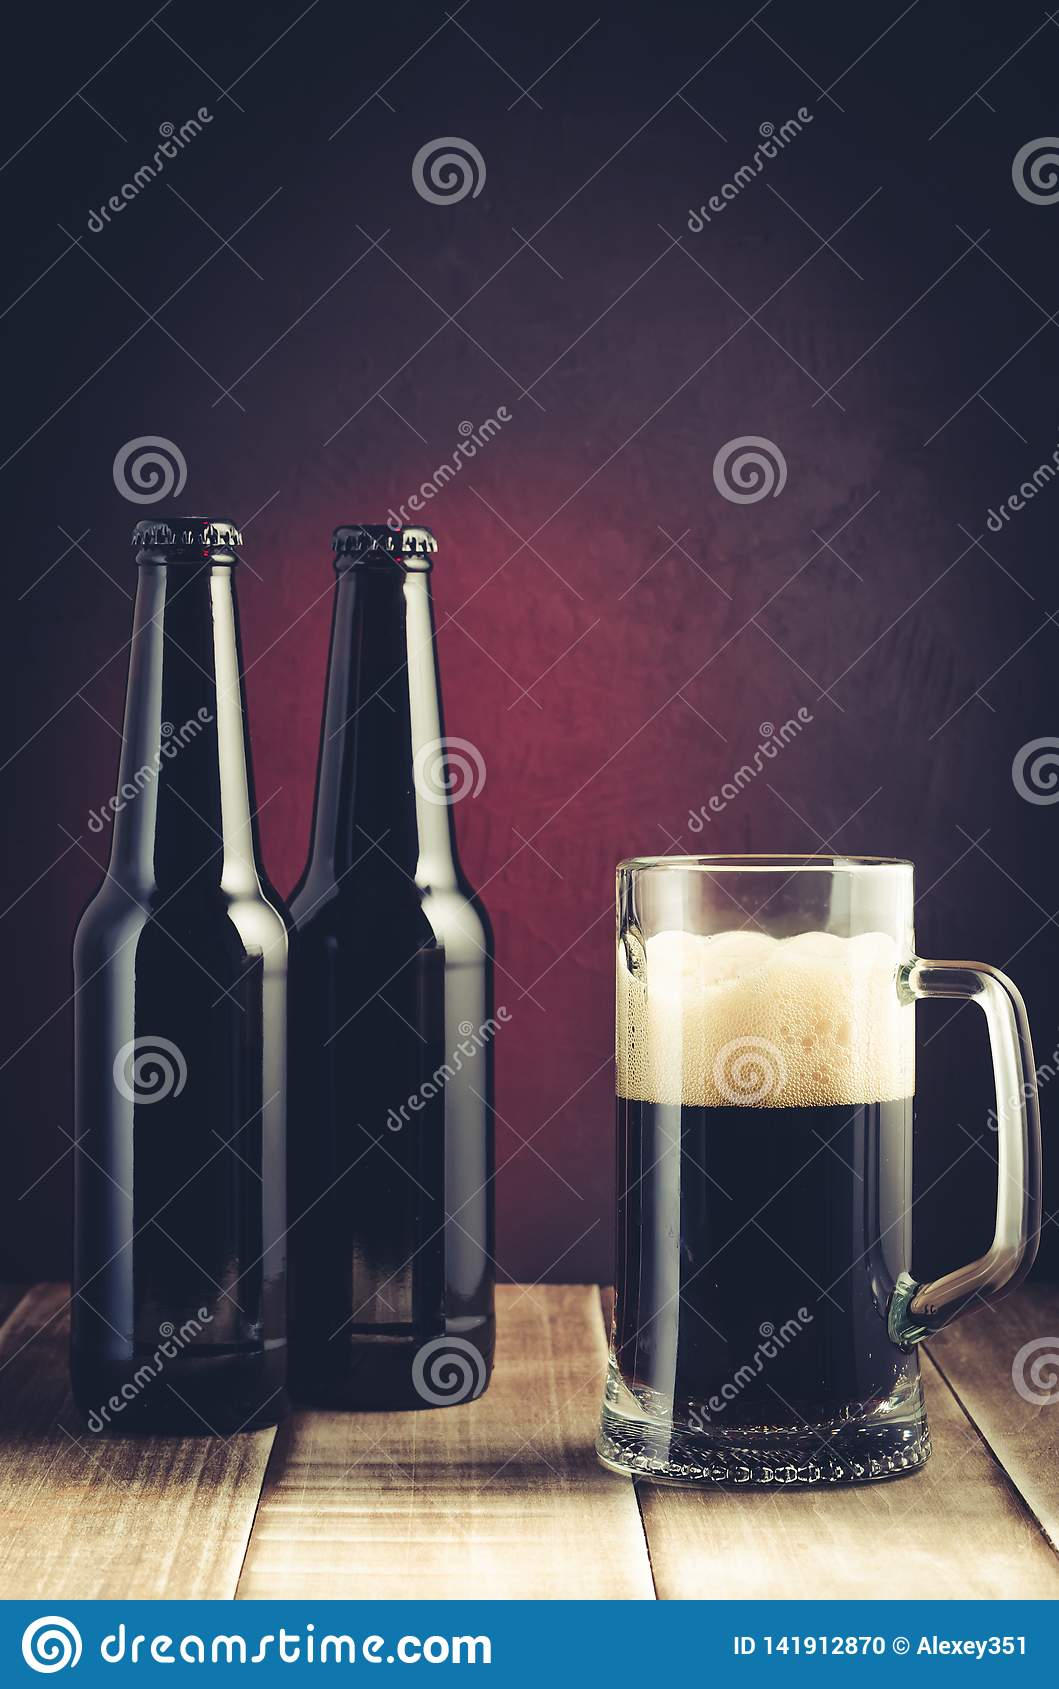 Black bottle and glass beer on a dark background with red light/black bottle and glass beer on a dark background with red light.